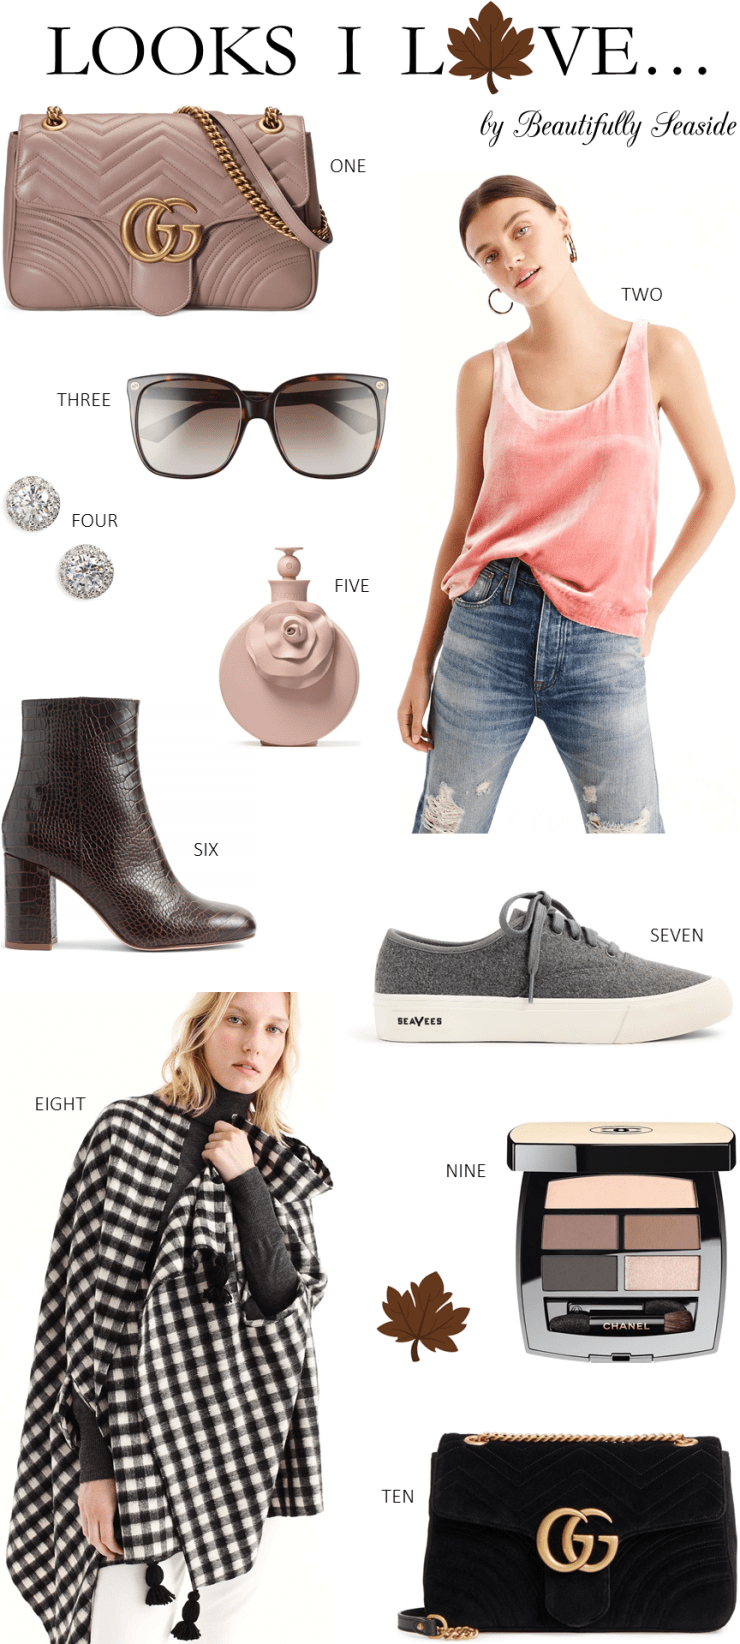 10 accessories you'll need for fall